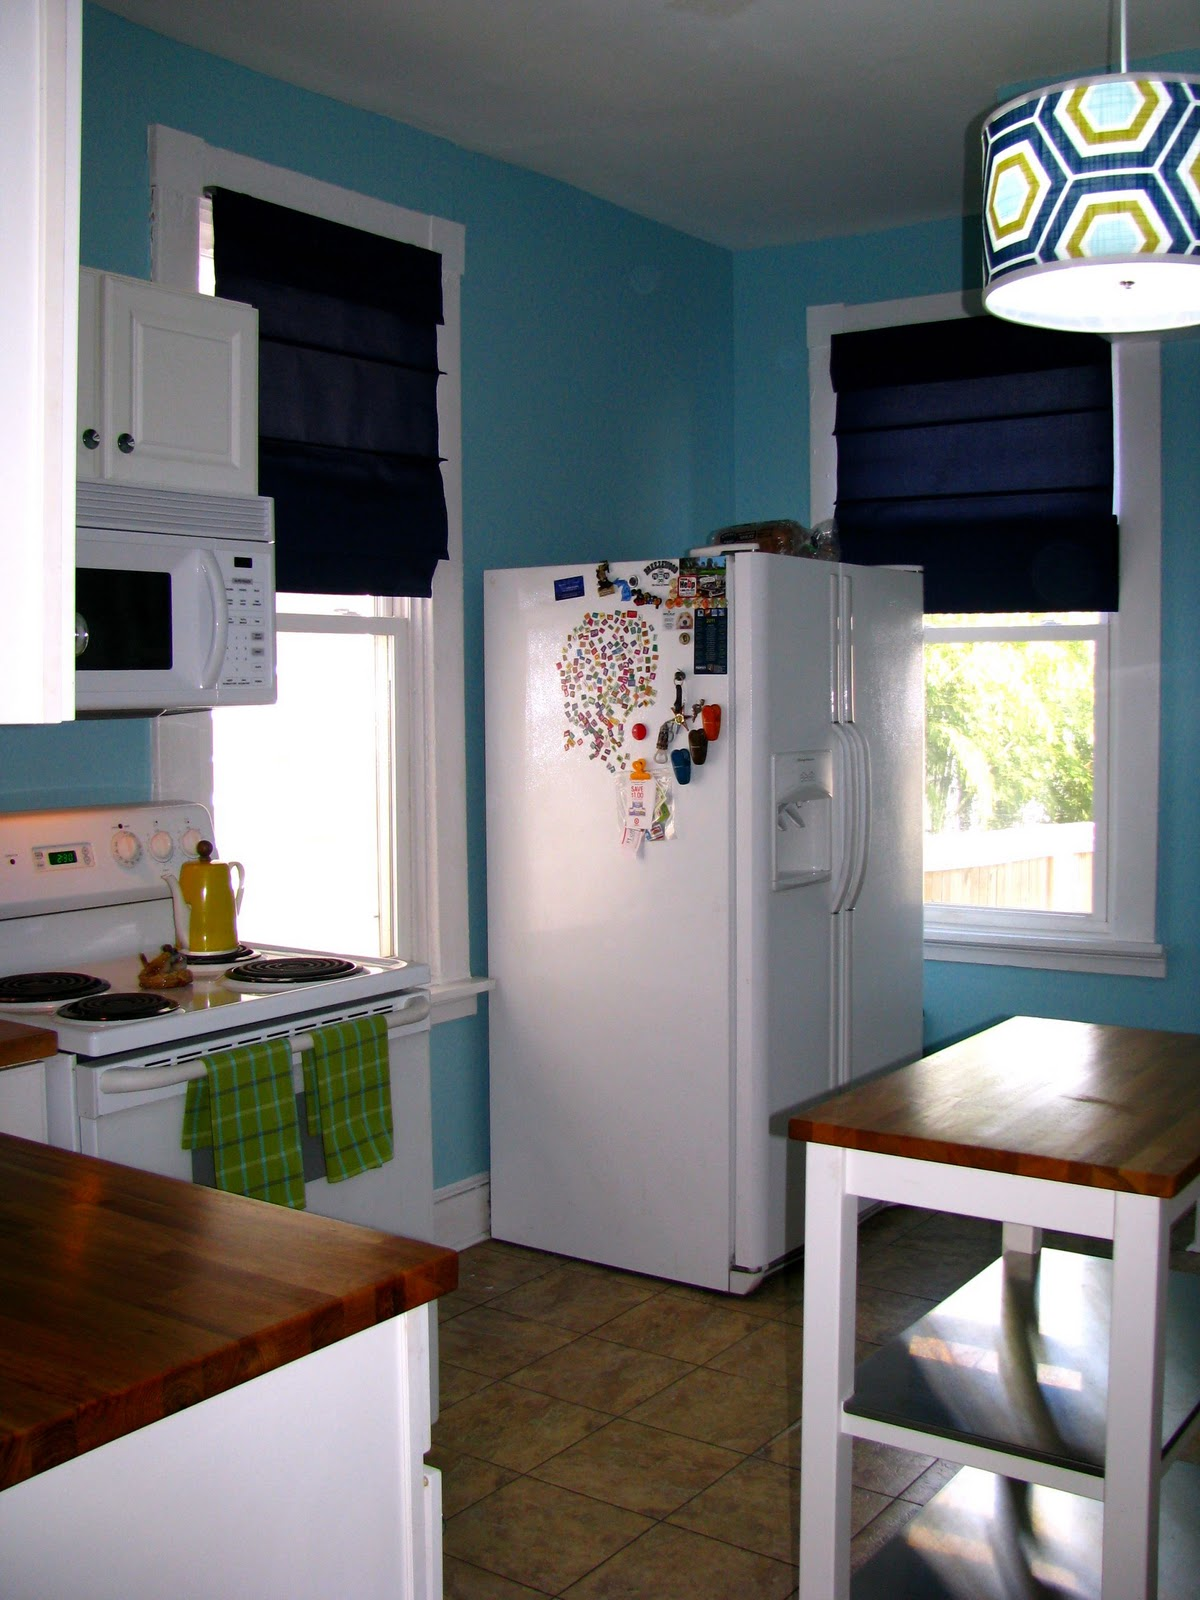 Remodelaholic kitchen remodel on the cheap for Cheapest way to remodel kitchen